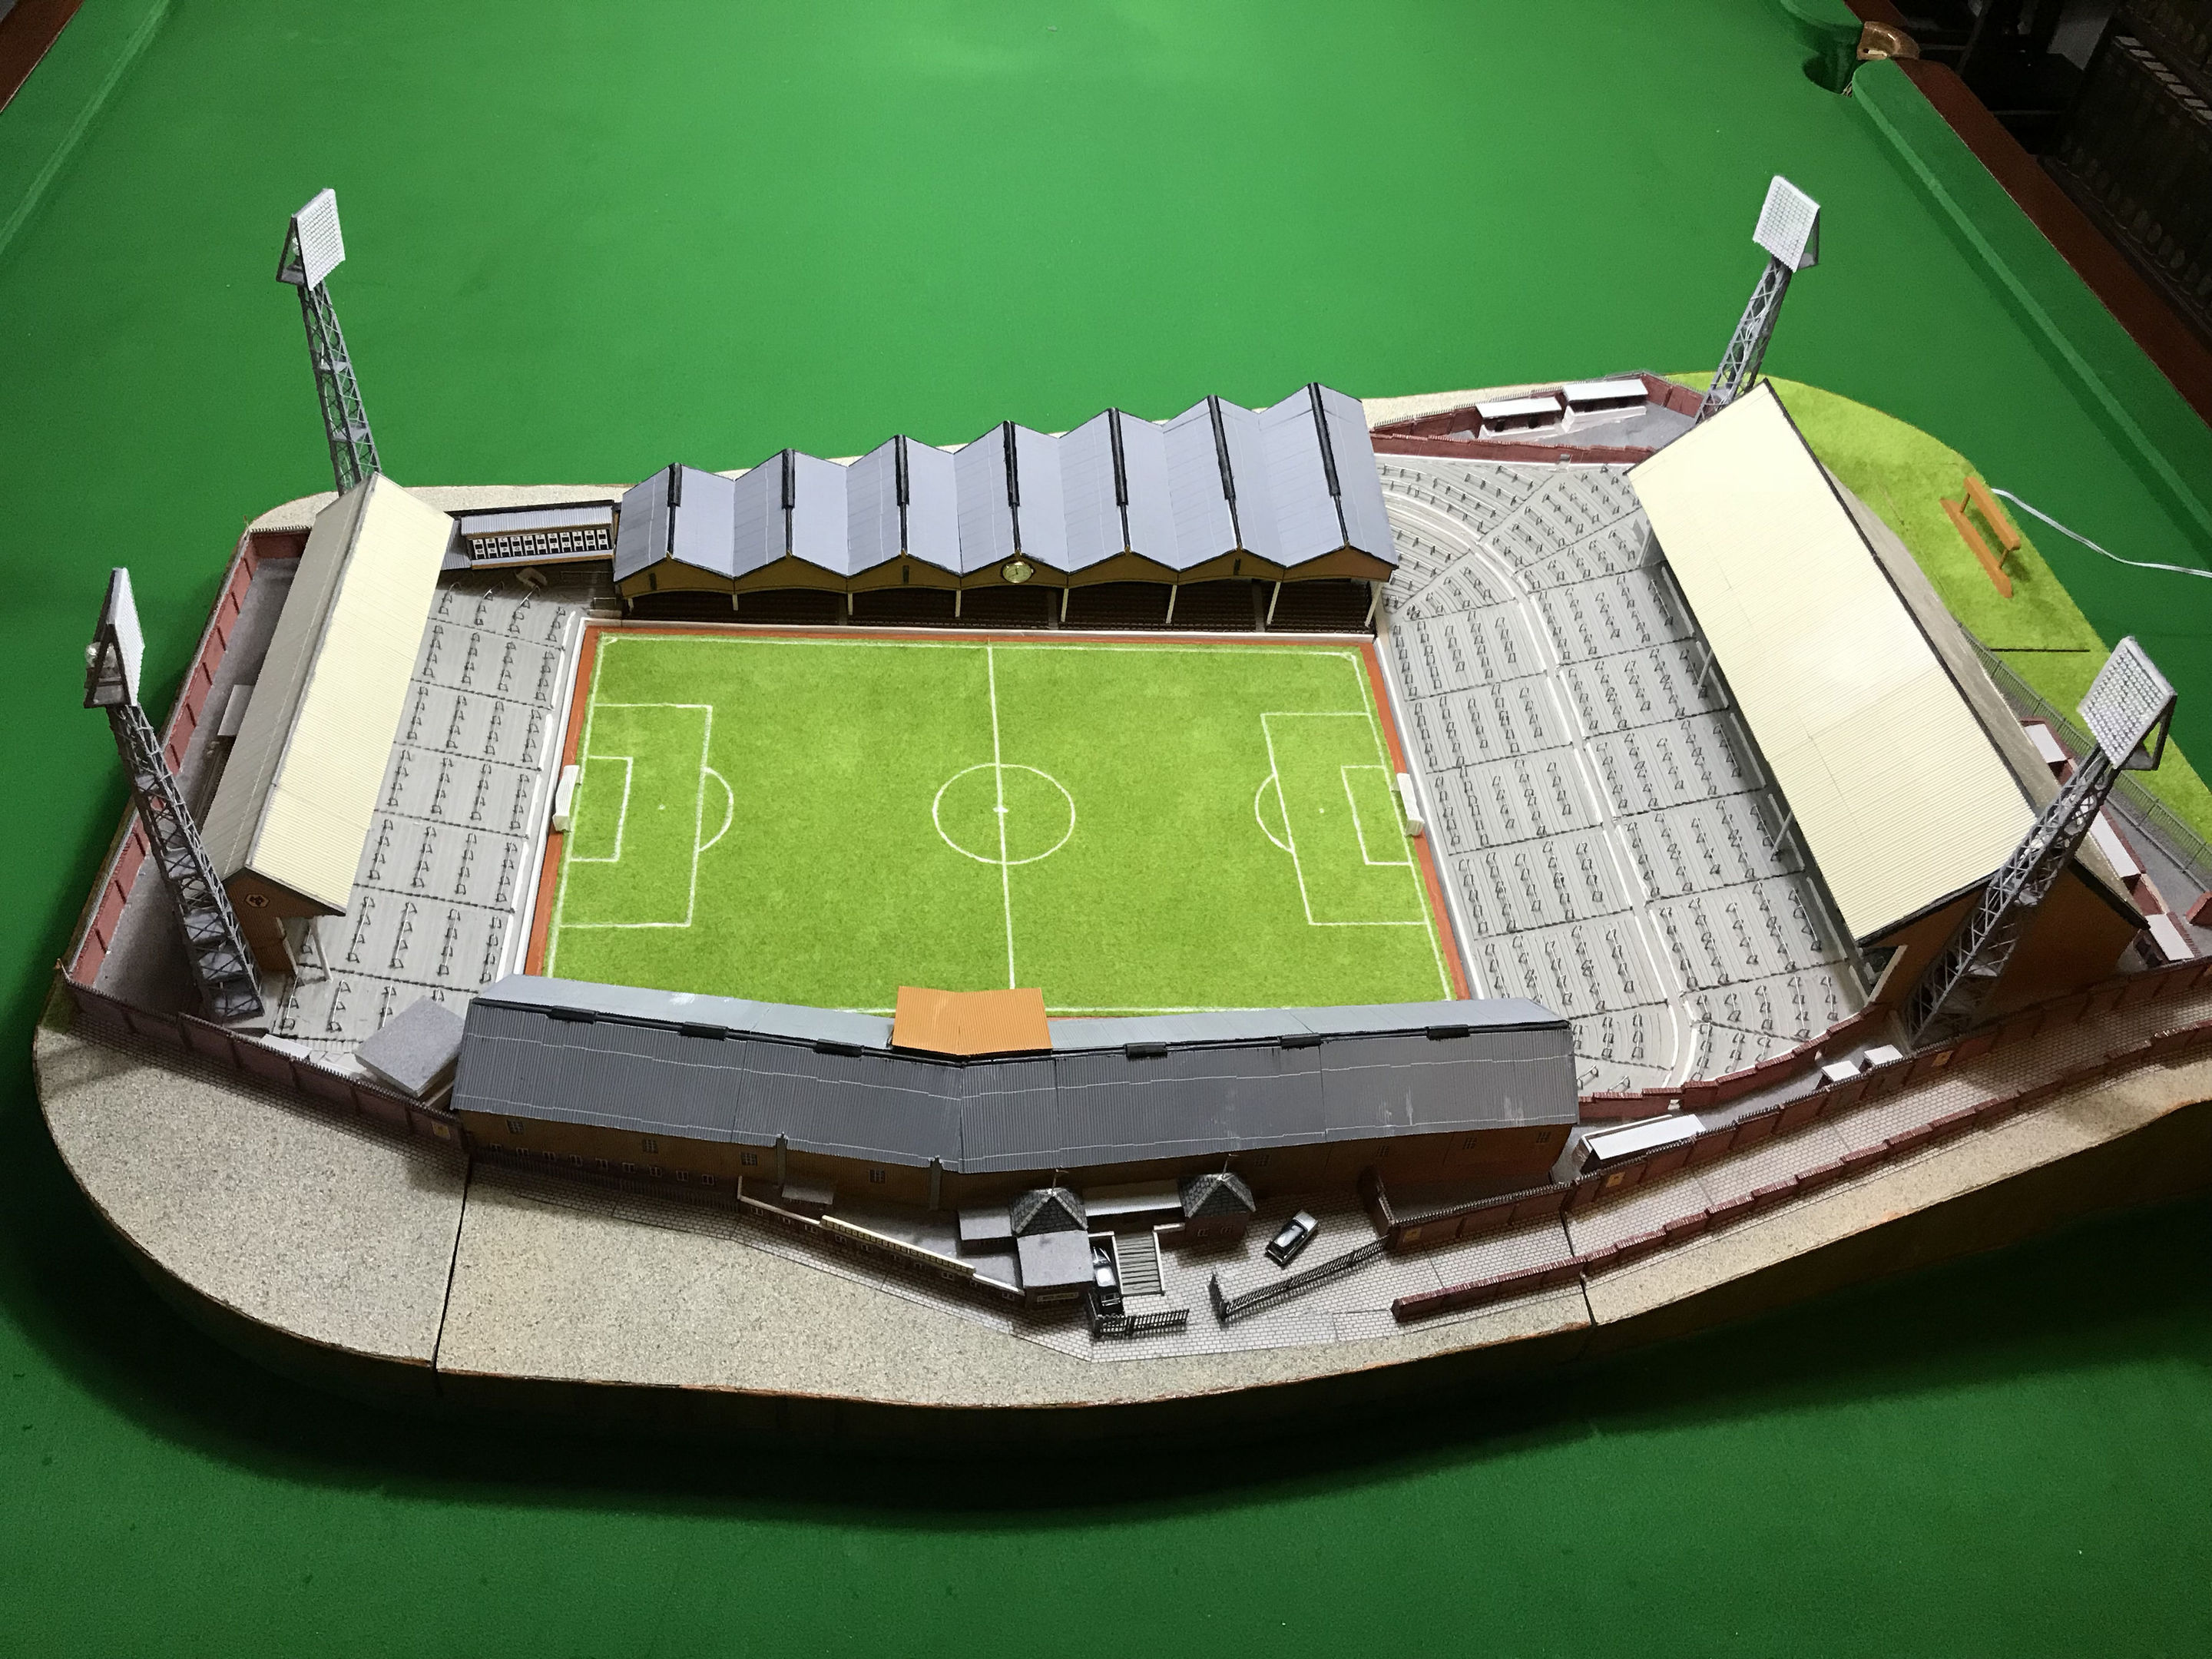 In Pictures Life Long Wolverhampton Wanderers Fan Creates